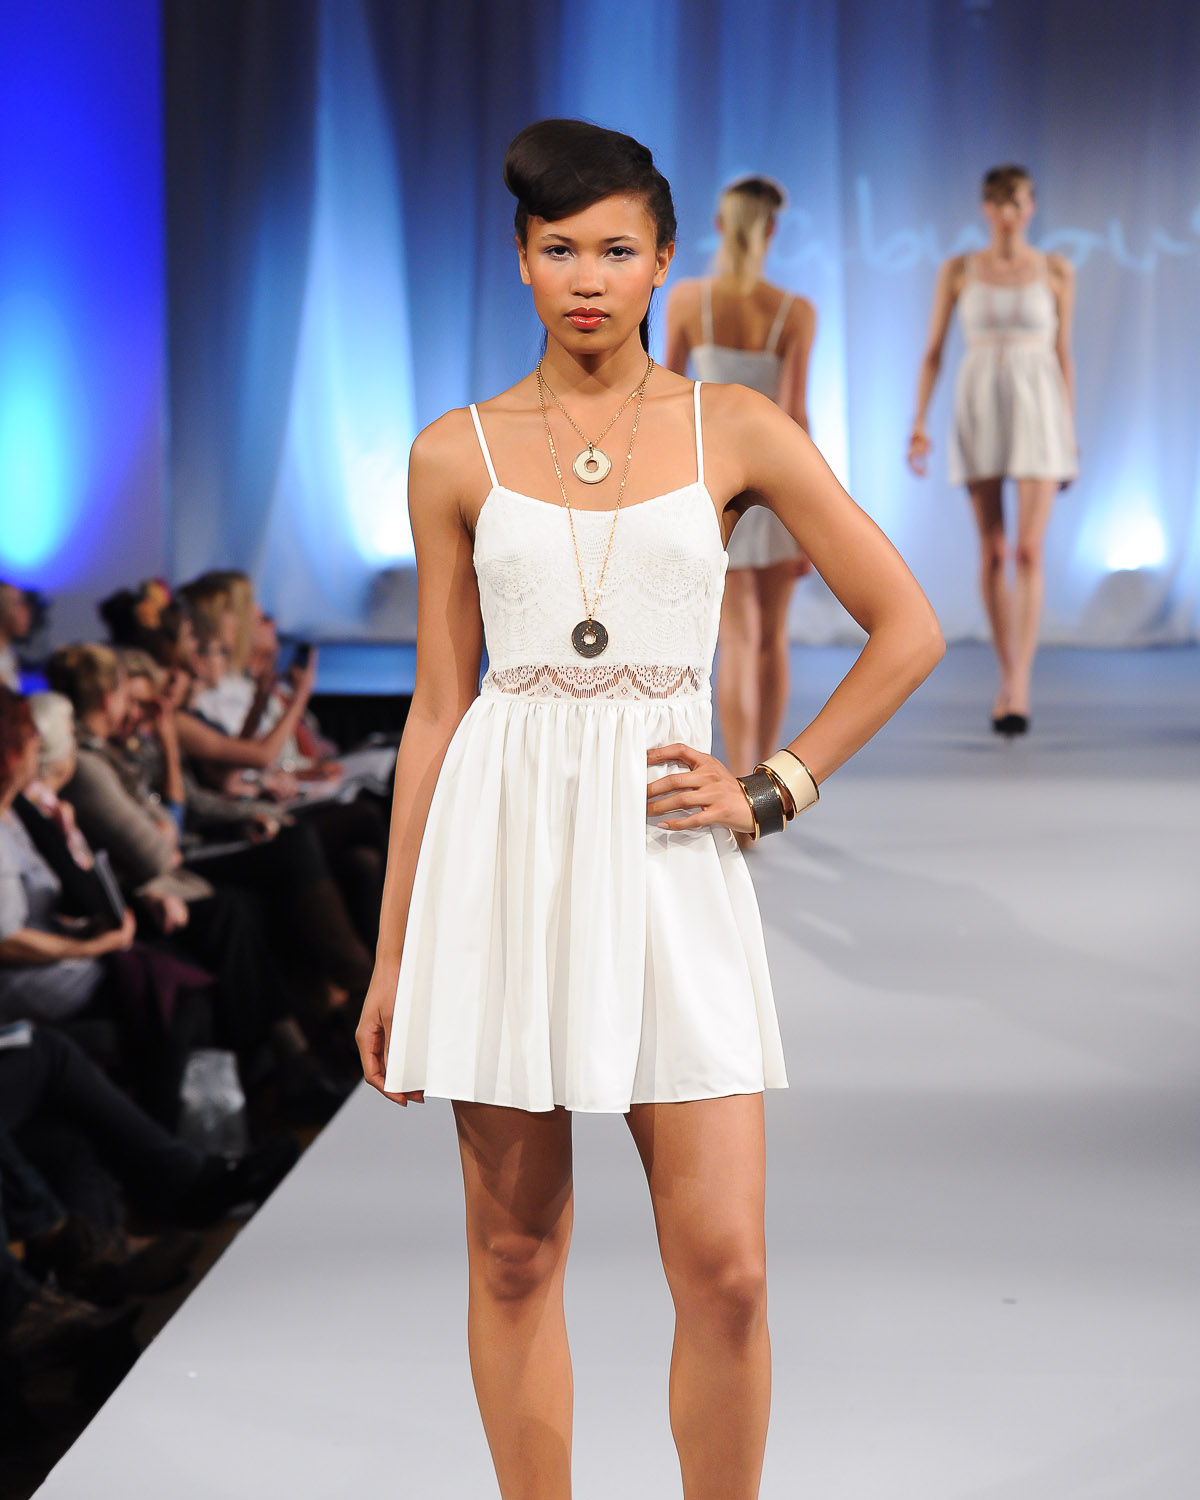 bath-in-fashion-spring-summer-10.jpg